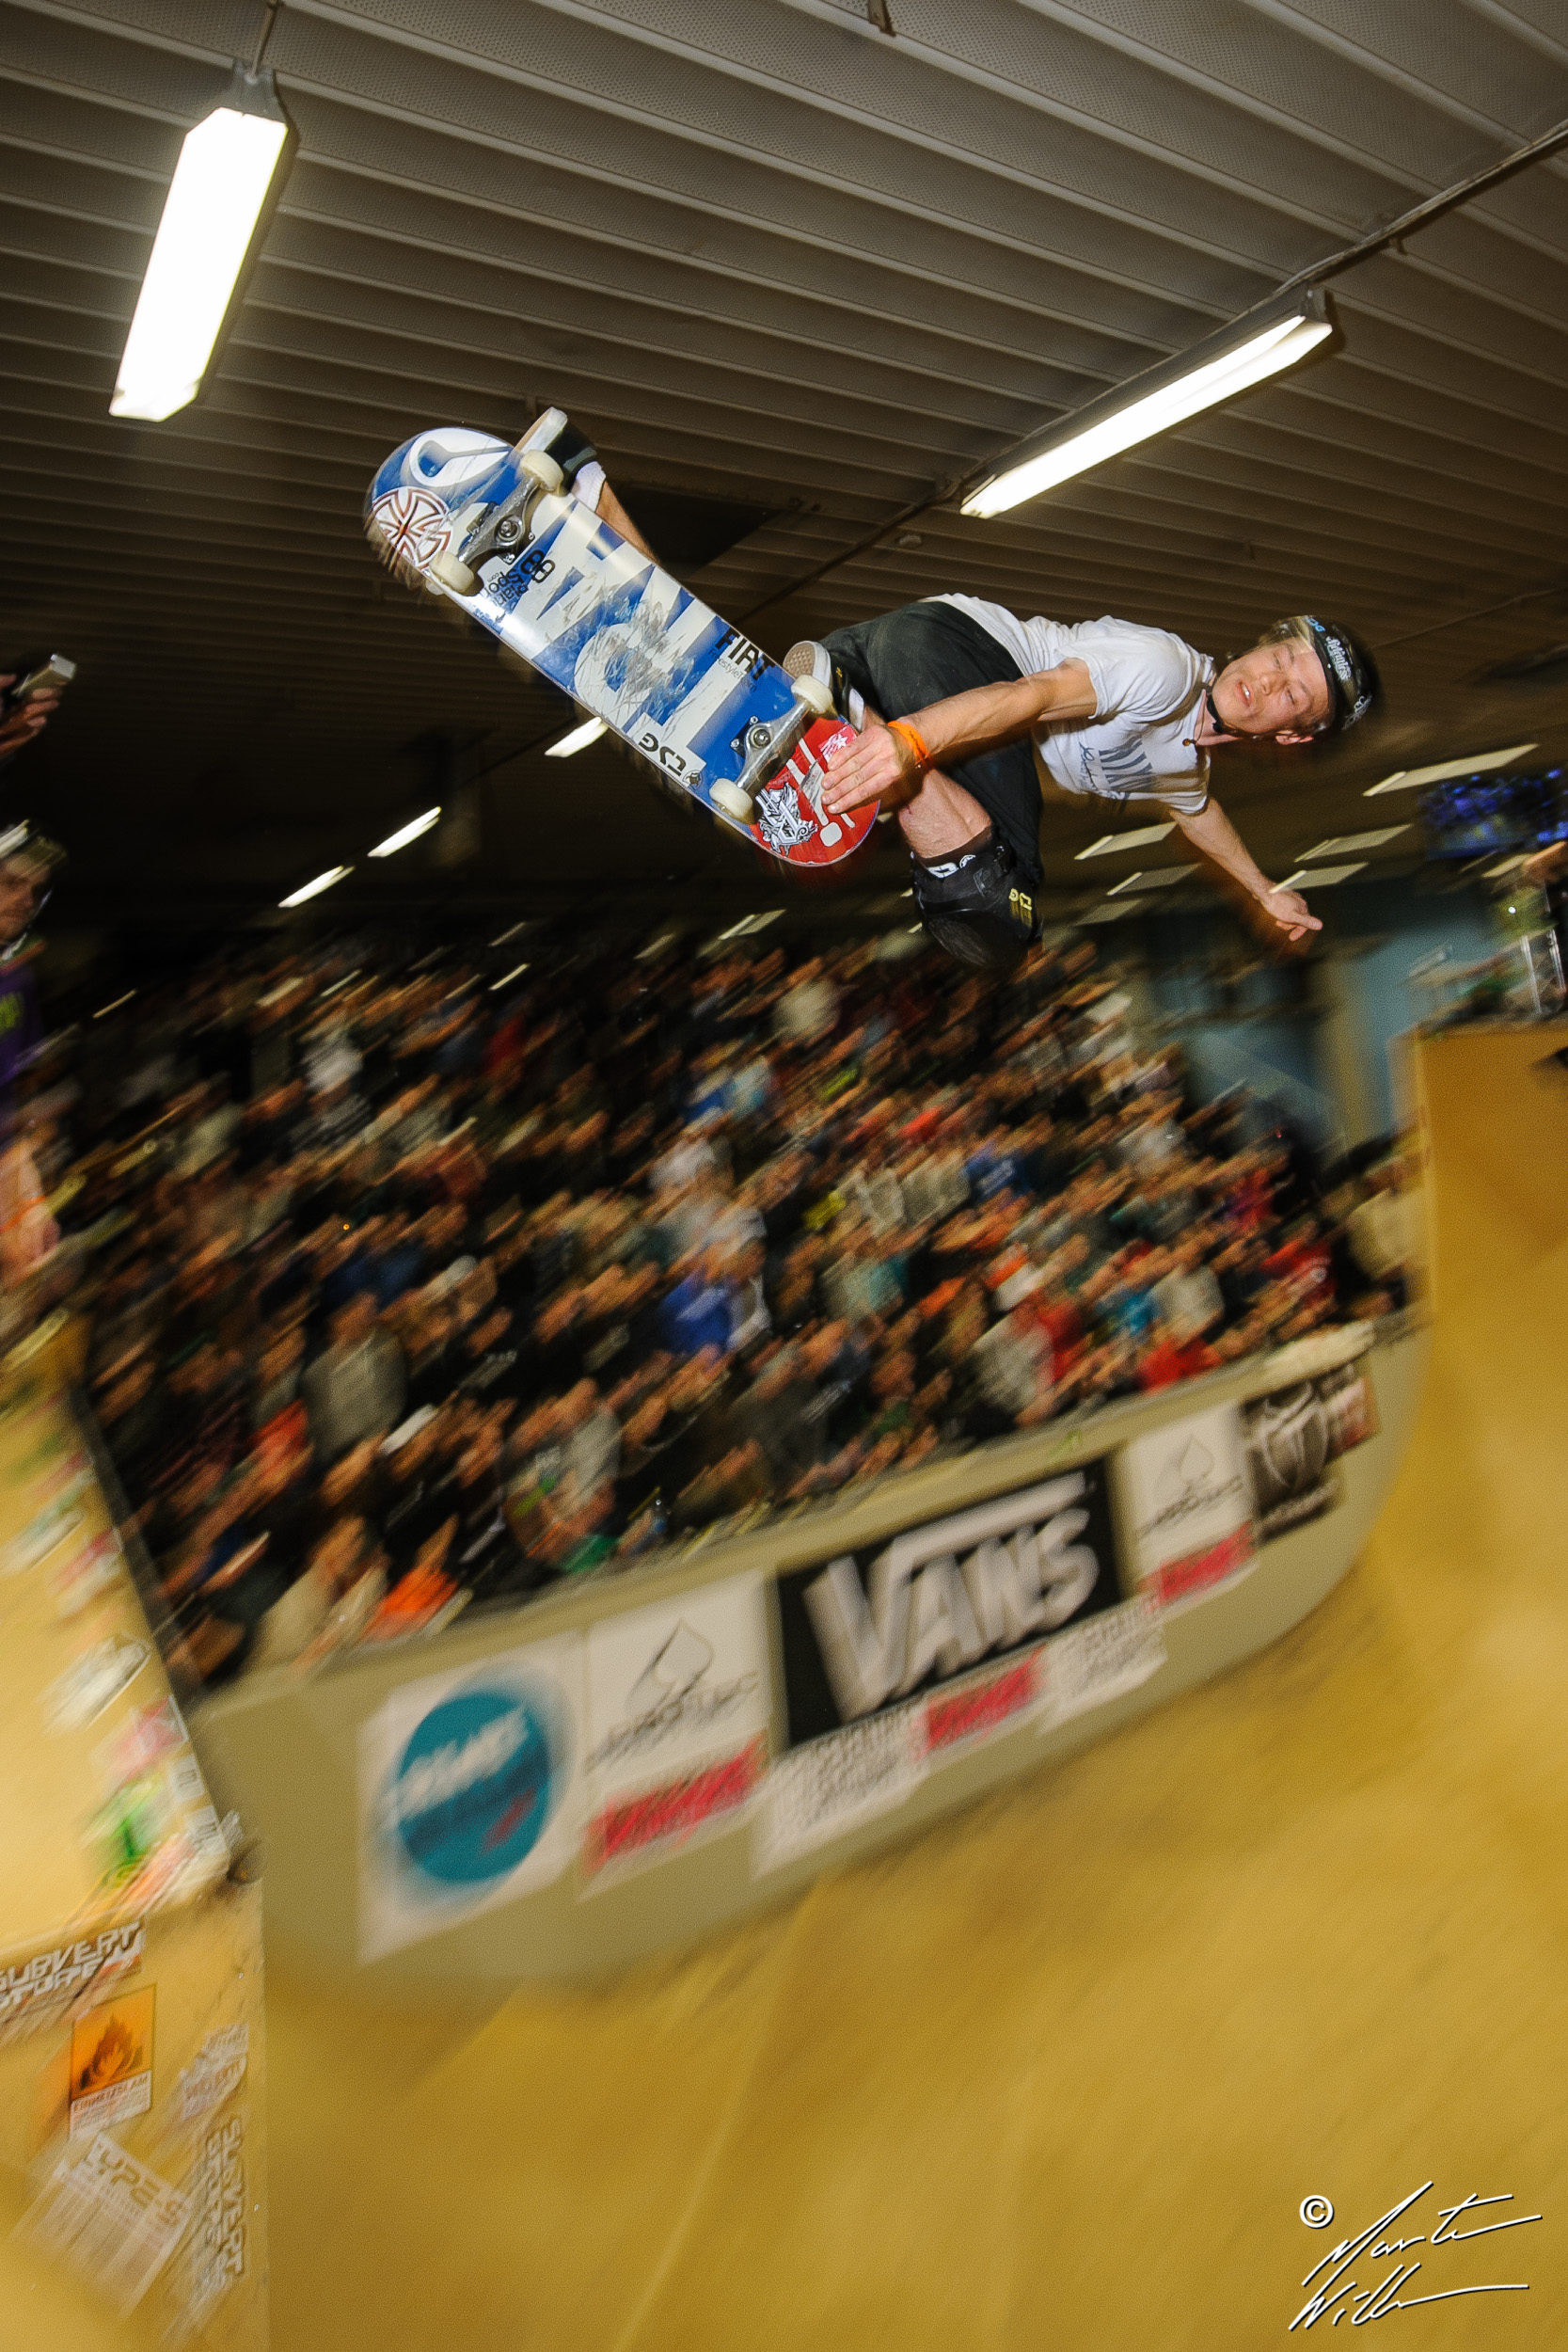 jüergen Horwarth, Backside air, Vert Attack 7, Malmö 2013